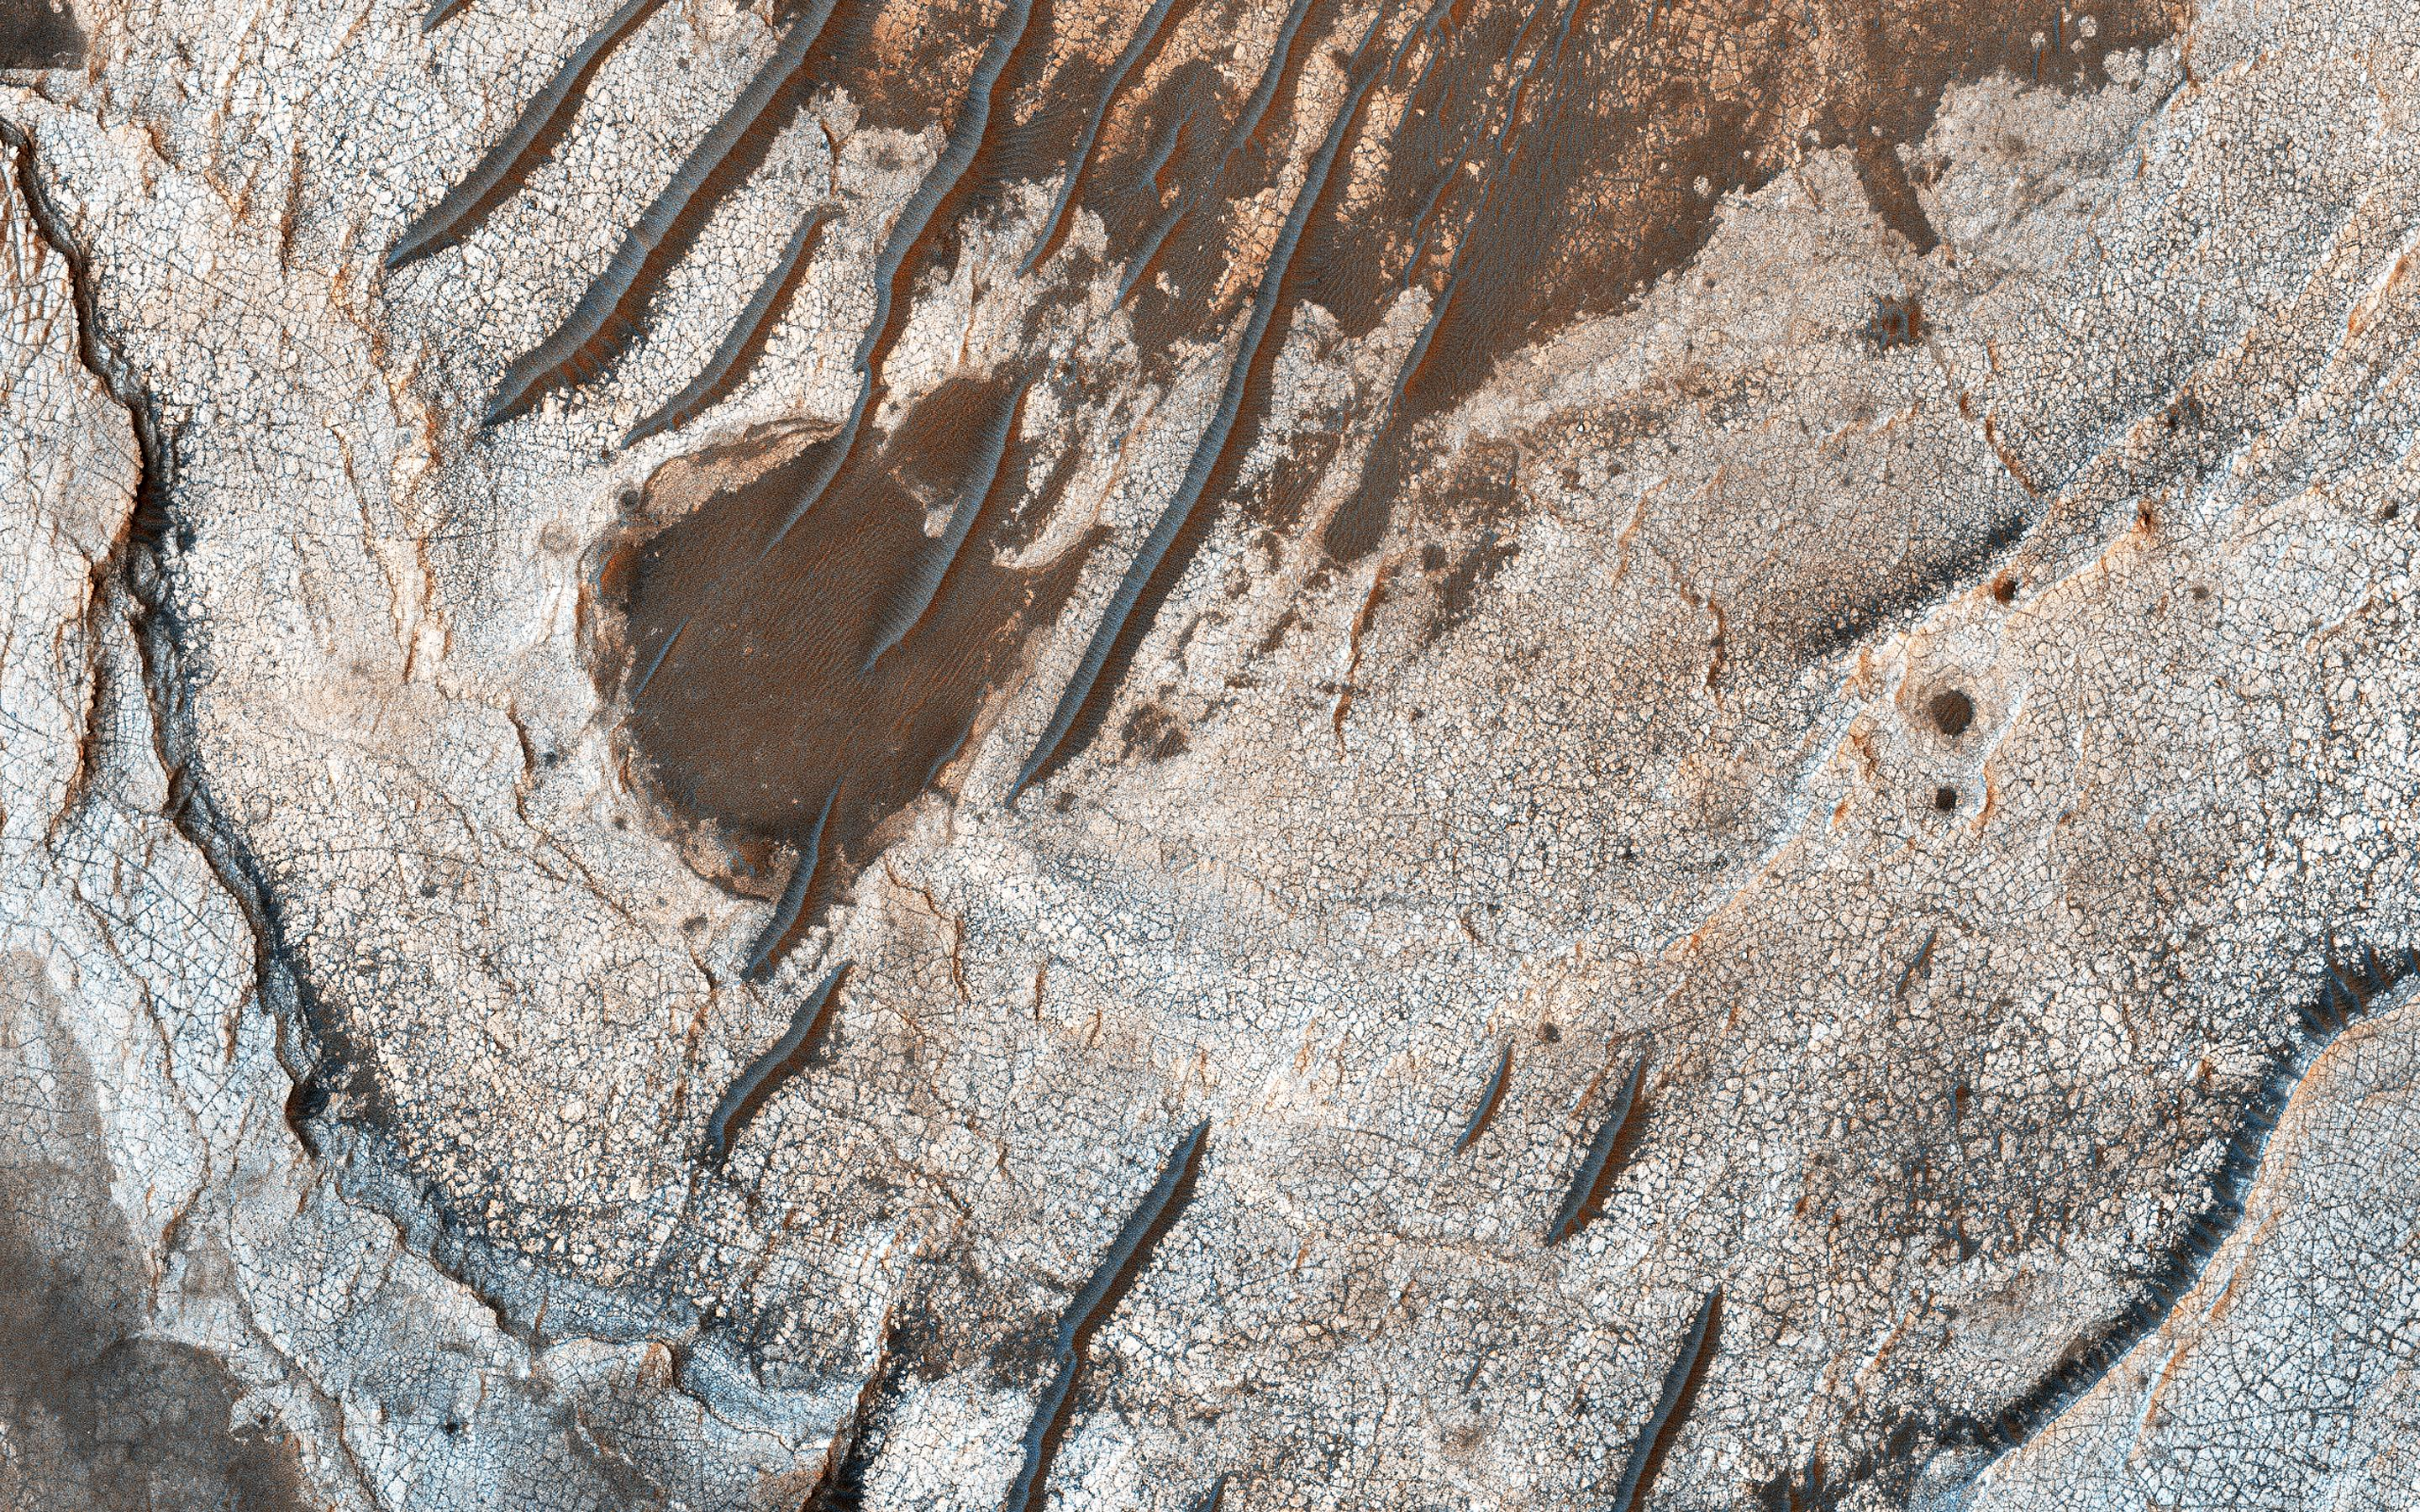 This image acquired on December 8, 2018 by NASAs Mars Reconnaissance Orbiter, shows erosion of the surface revealing several shades of light toned layers, likely sedimentary deposits.